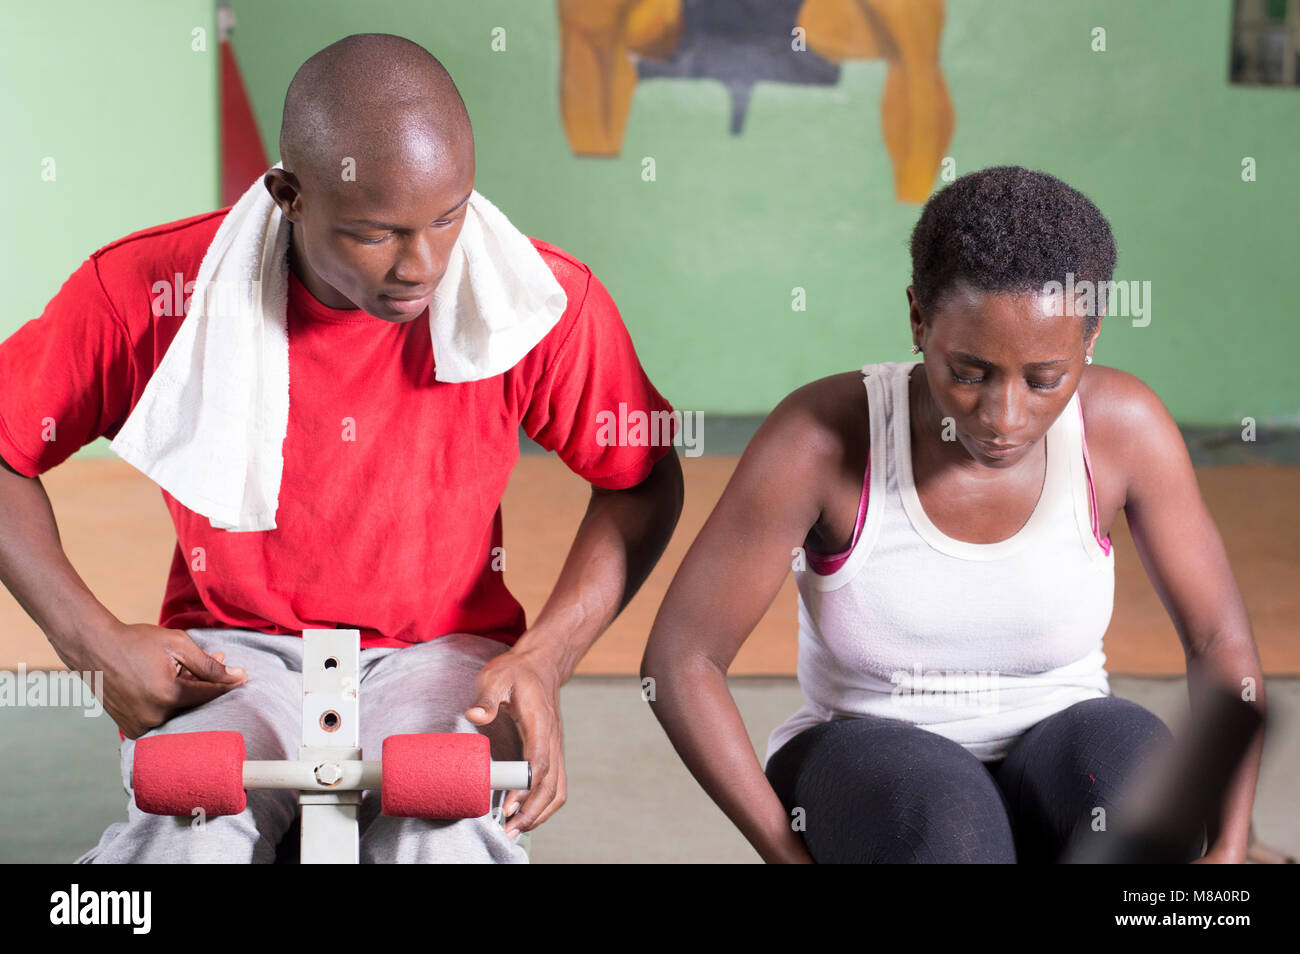 Young woman in training session on a bench with her coach in a gym. - Stock Image